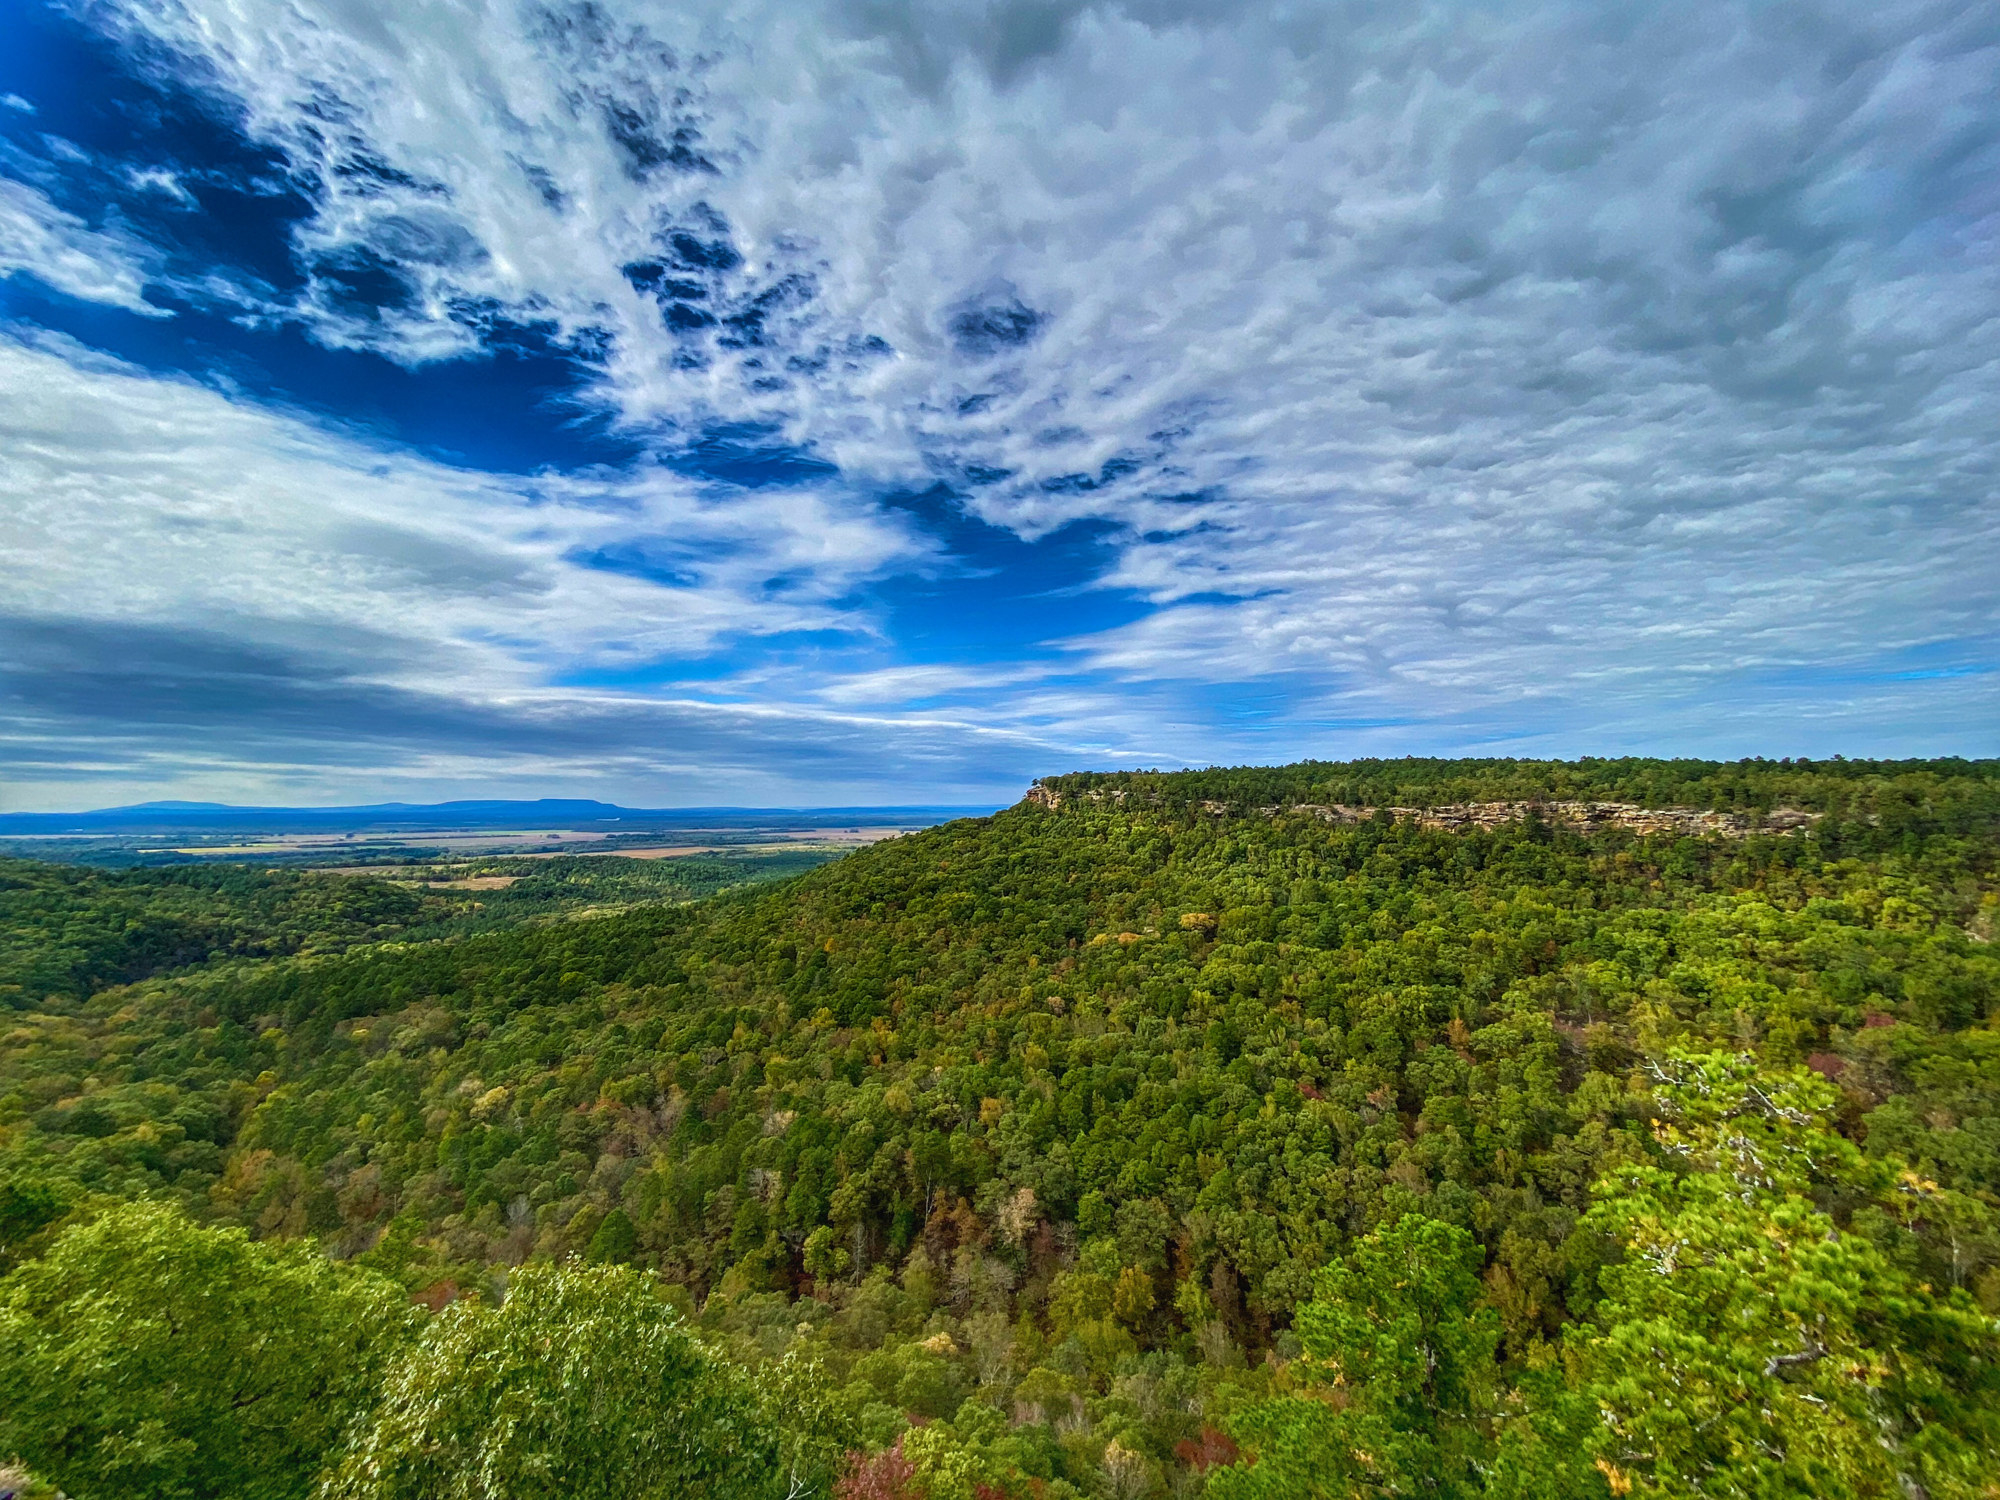 A view from Petit Jean National Park.